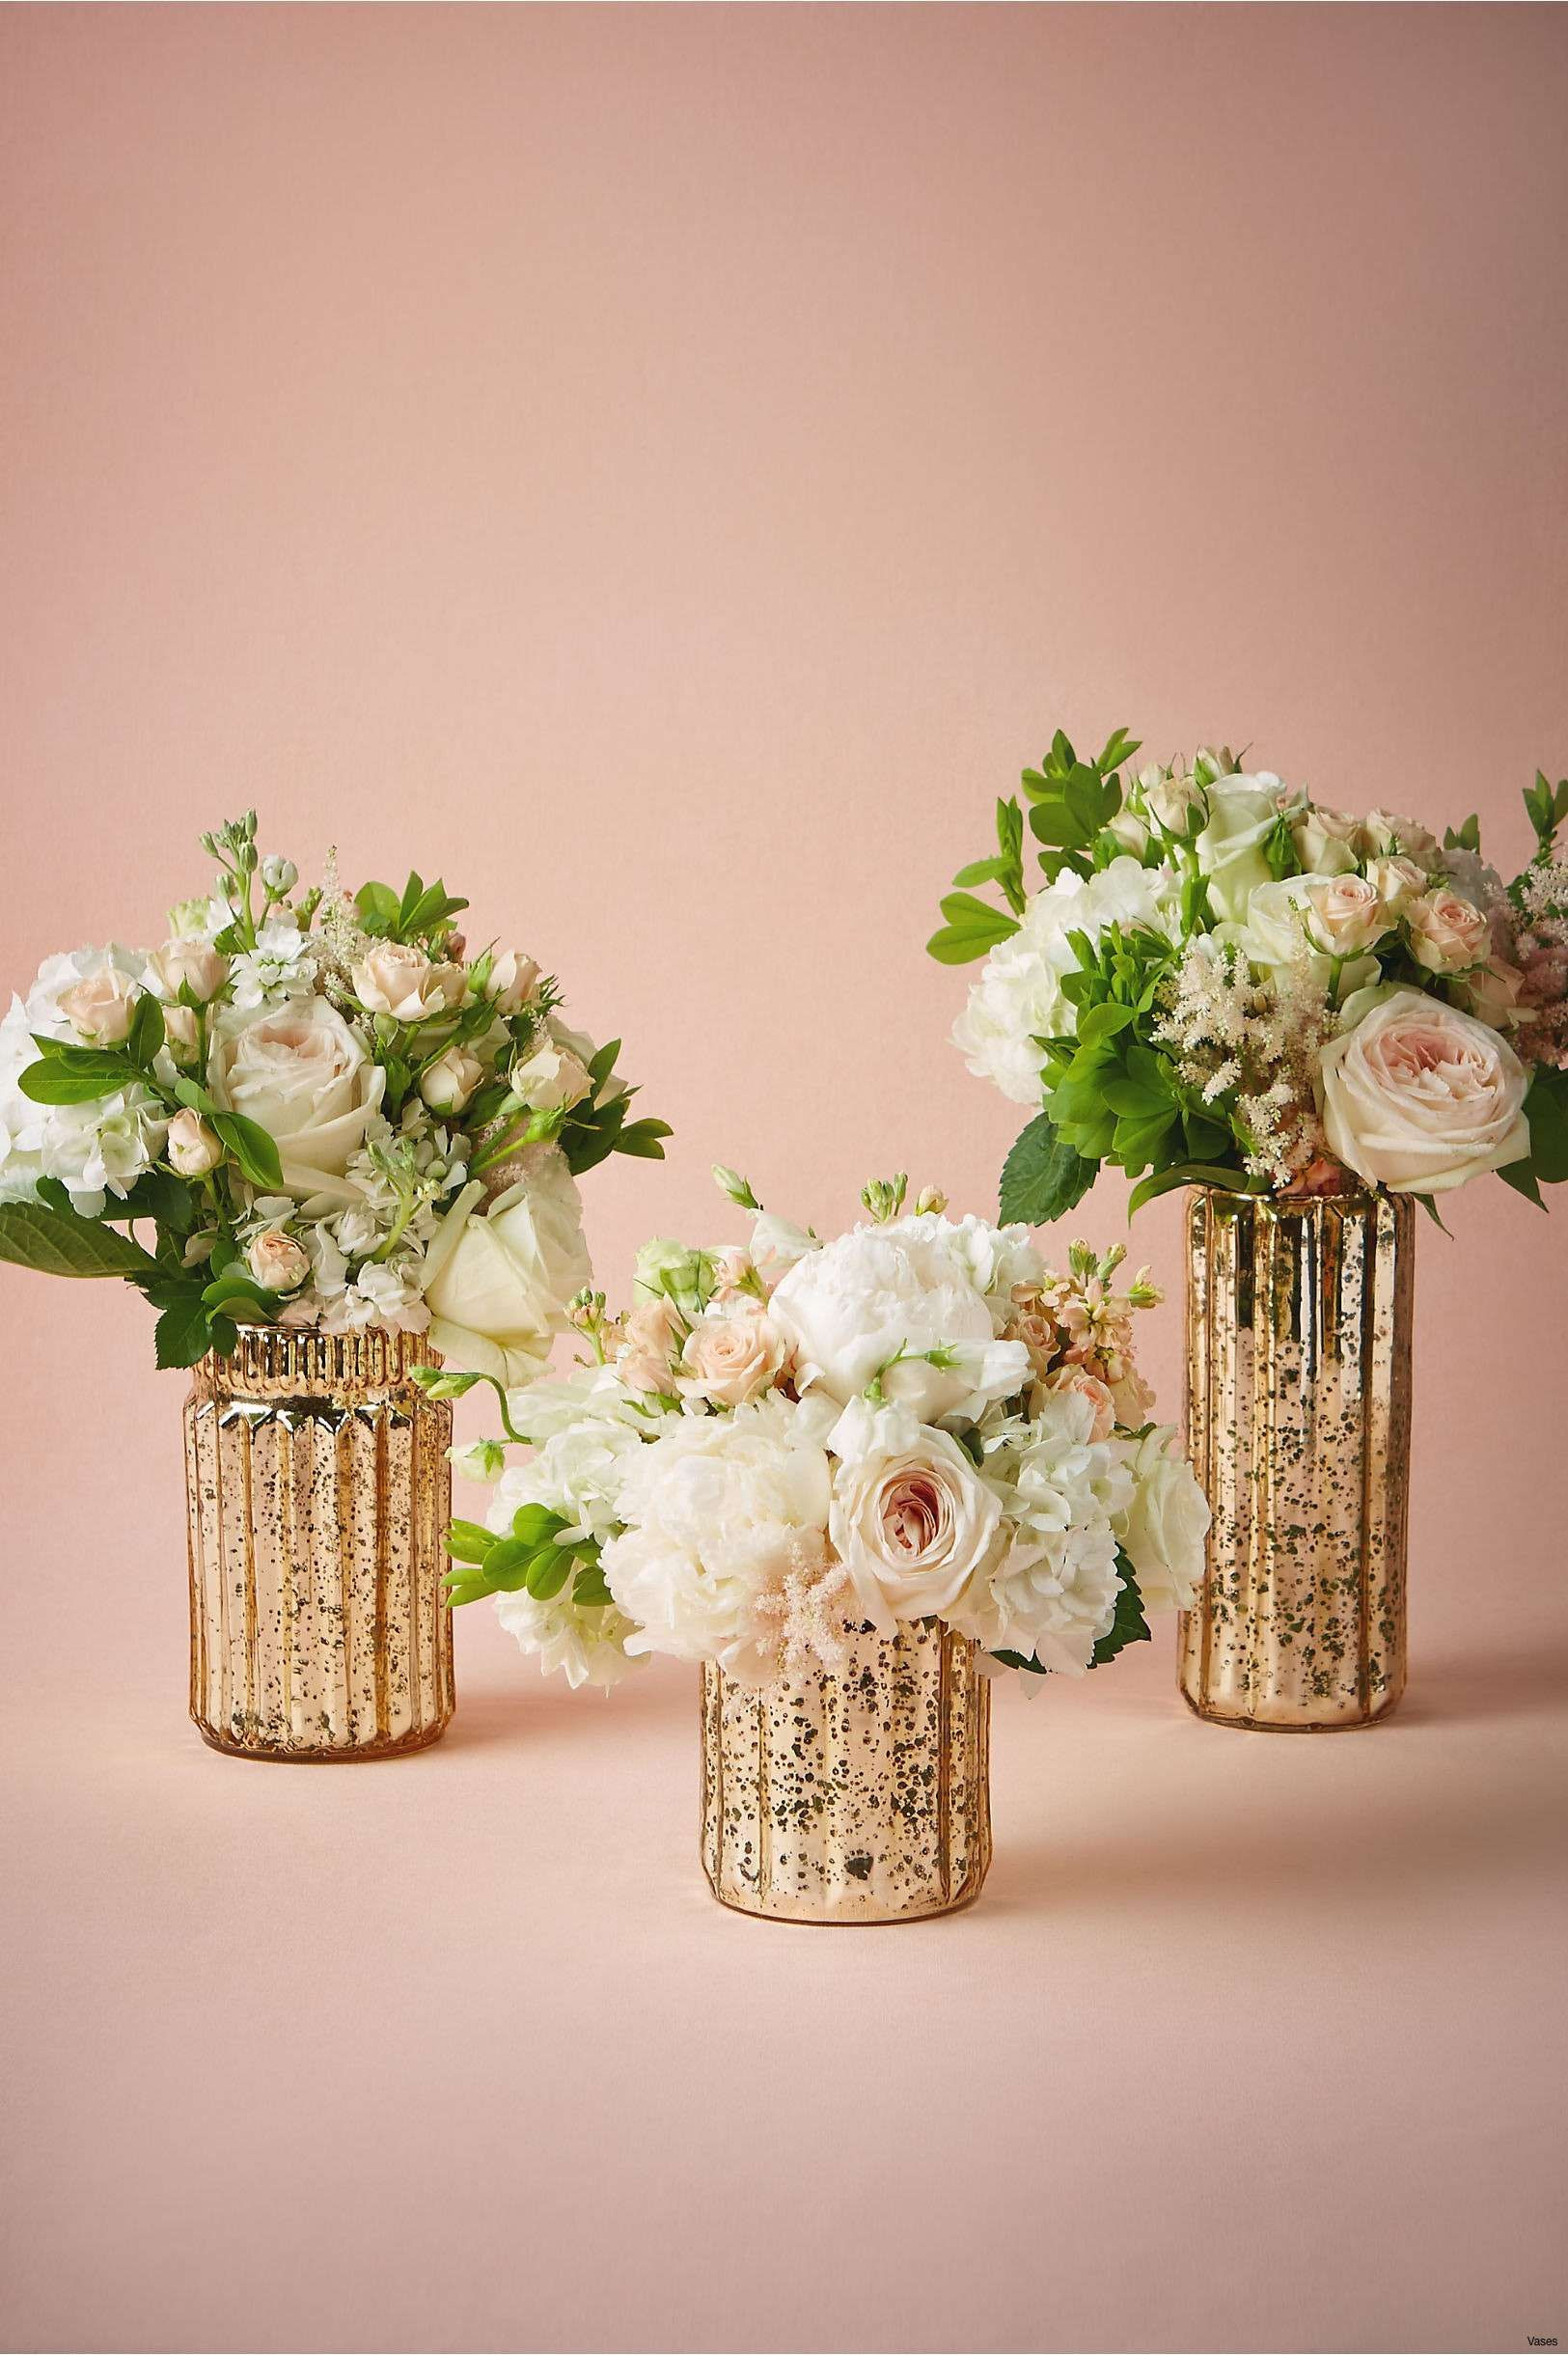 Southern Living at Home Vase Of 47 Vase Centerpiece Ideas the Weekly World with 6625 1h Vases Mercury Glass Cylinder Vasesi 0d Australia Design